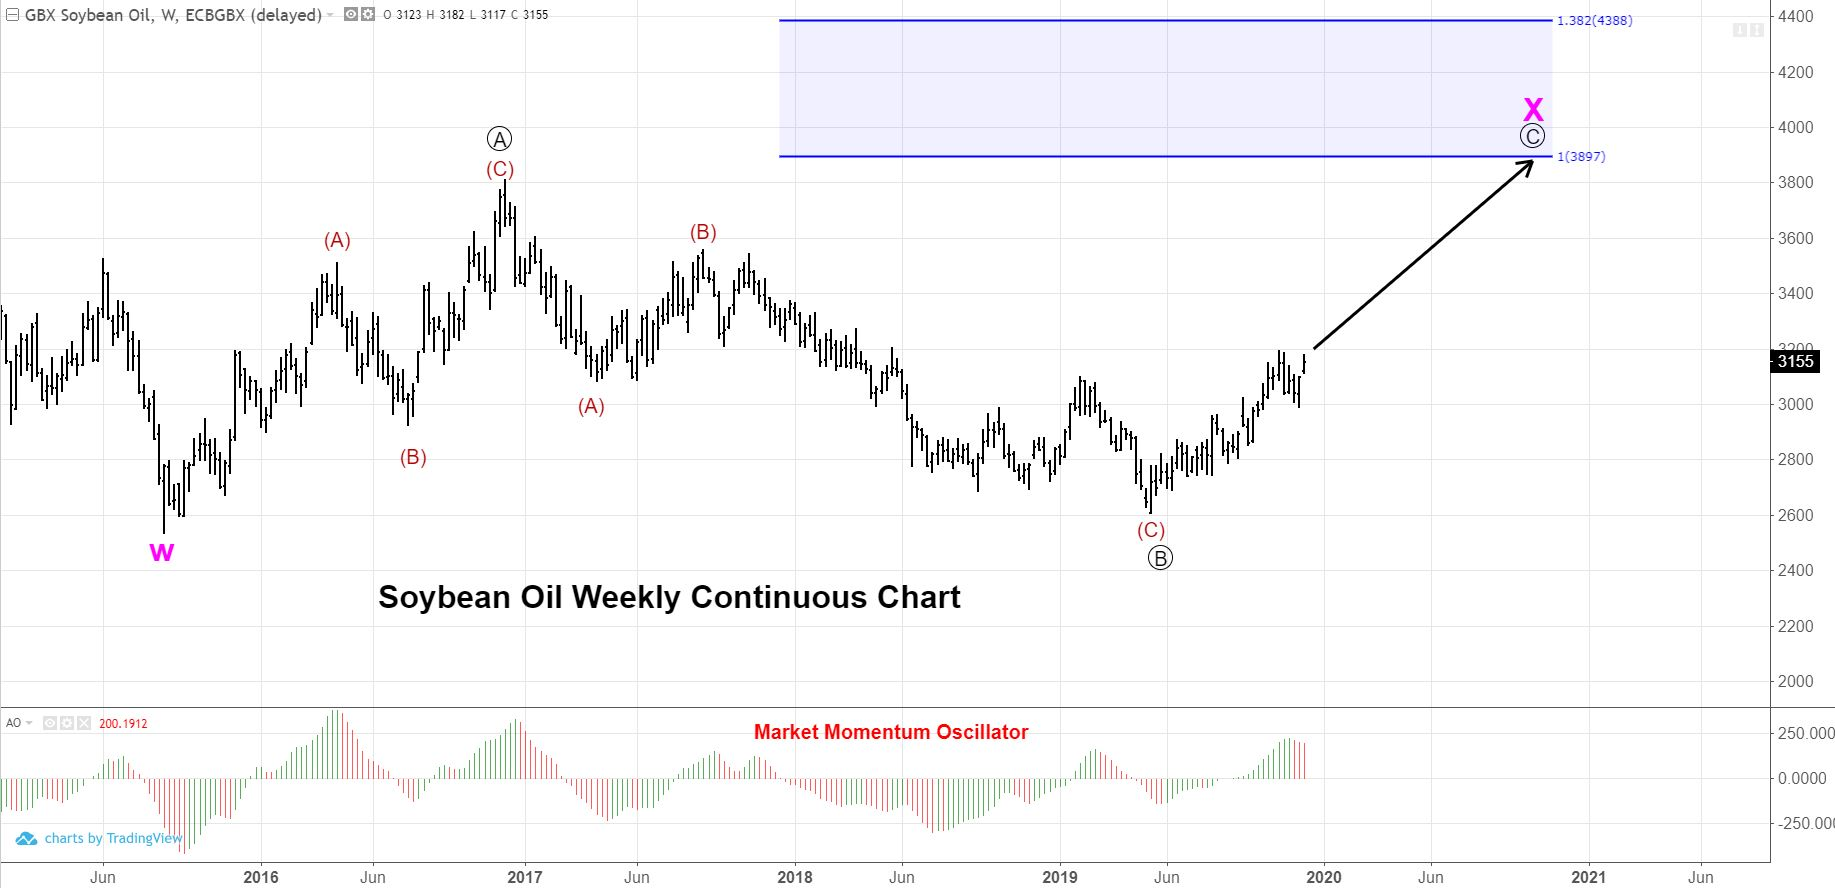 Weekly Continuous Soybean Oil Chart